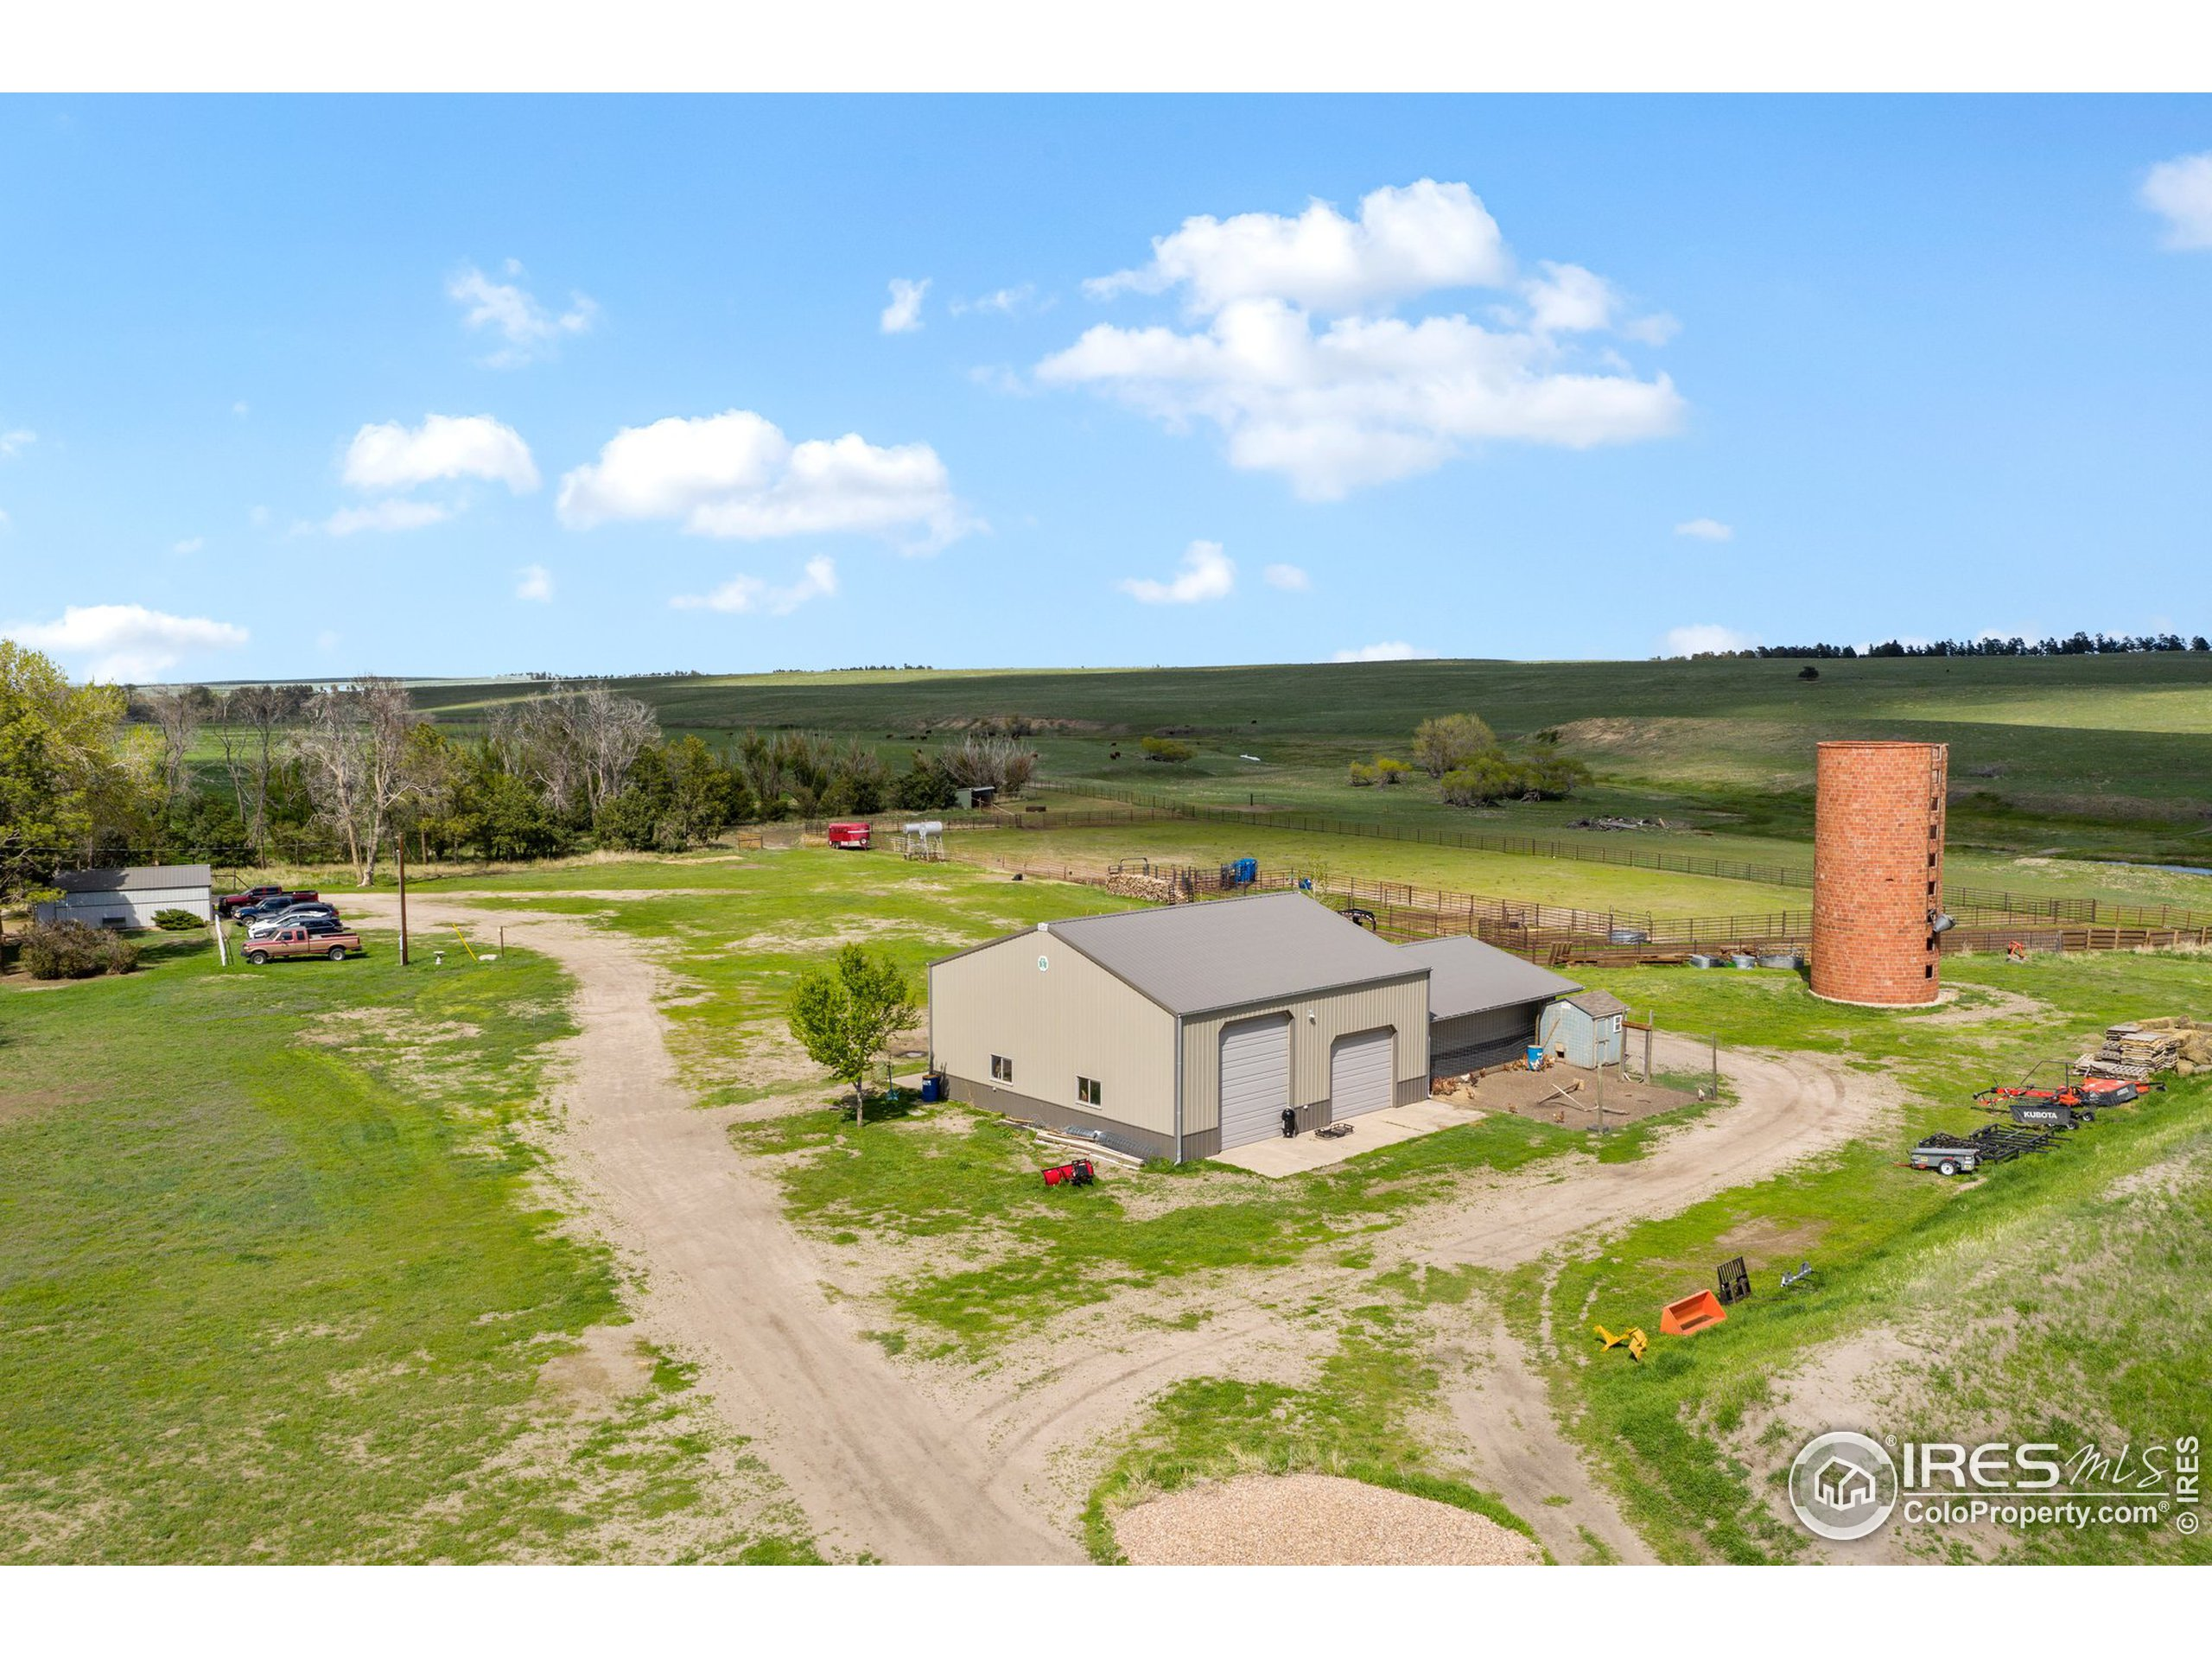 42 x 42 Pull through Pole Barn ~Concrete Floors ~ Lean to ~ Fenced in Kennel ~ Hay Storage